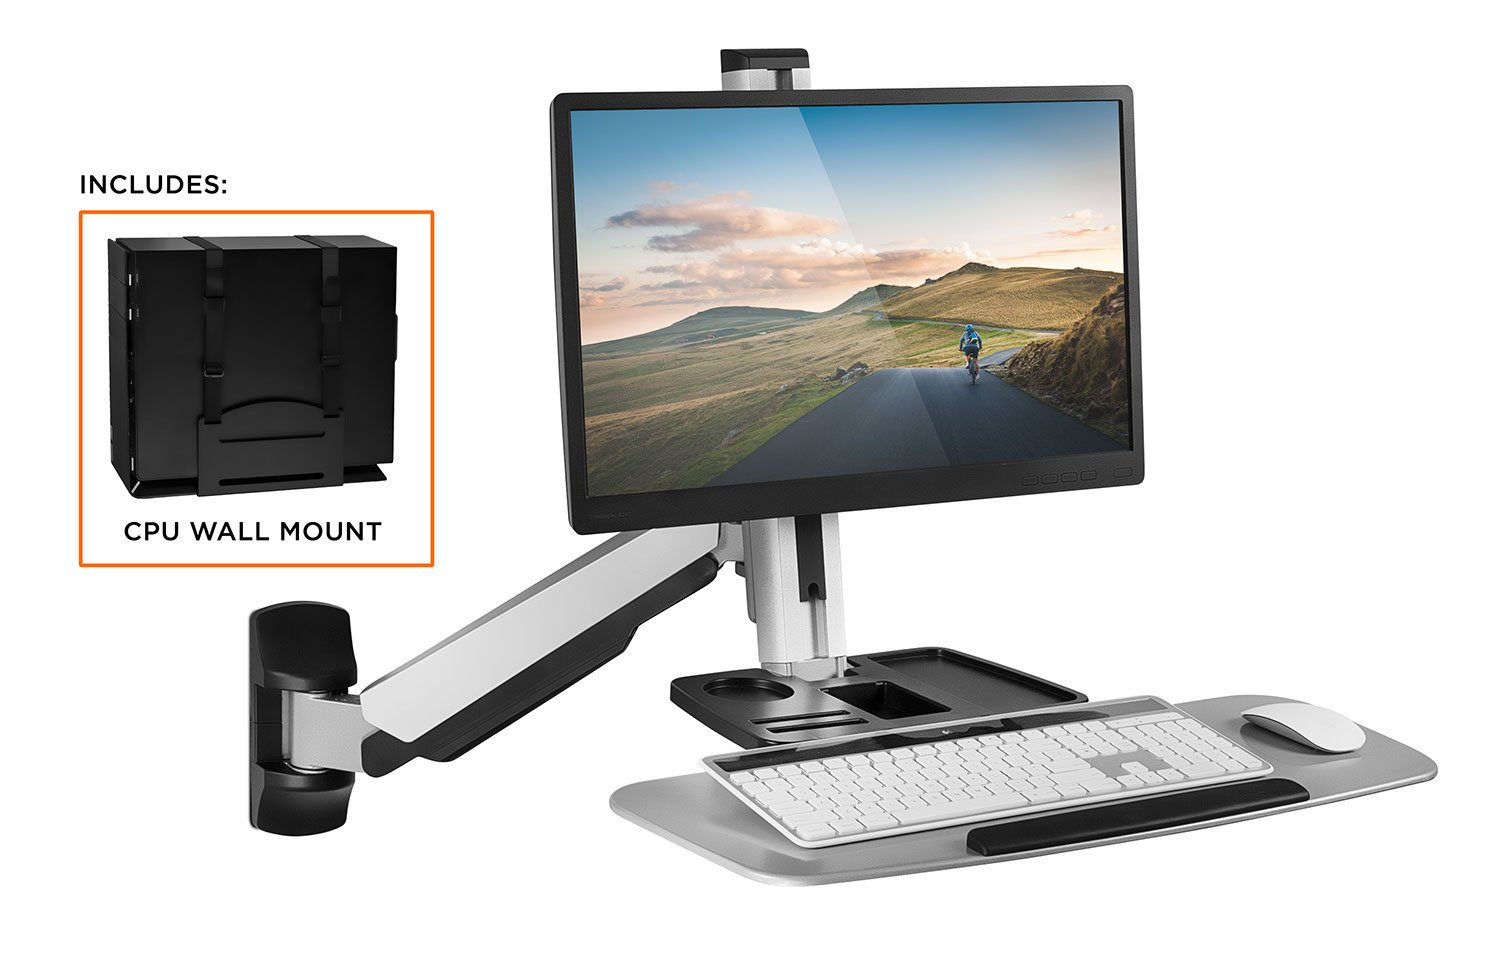 Mount-It! Sit Stand Wall Mount Workstation & Stand Up Computer Station with Articulating Monitor Mount, Keyboard Tray Arm and CPU Holder, Silver VESA 75 100 by Mount-It!